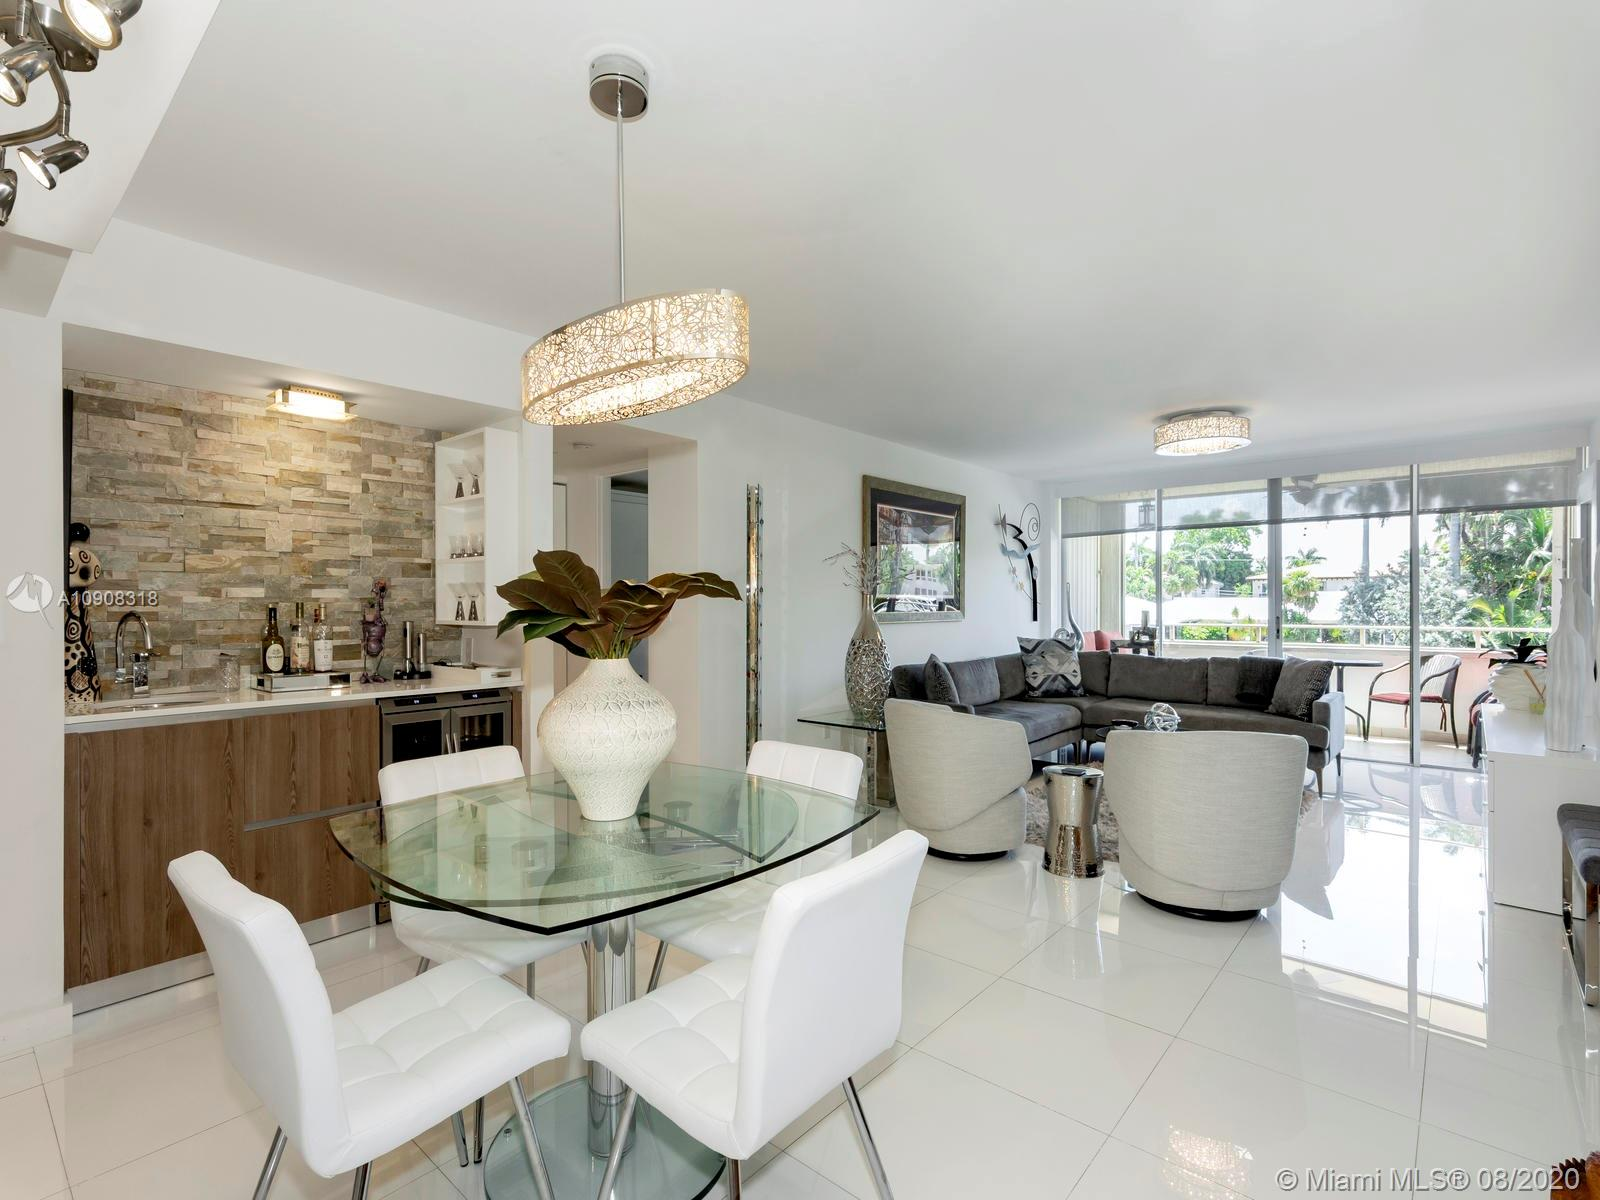 Stunning renovated and spacious 2 bedrooms / 2 baths condo with direct water views and large balcony overlooking the intracoastal in highly desirable Bay Harbor Islands. Building sits on the canal & features zen style lobby, relaxing water front pool with bbq area, gym and sauna. Excellent location only minutes to Bal Harbour Shops, dining, beaches and A+ rated schools.